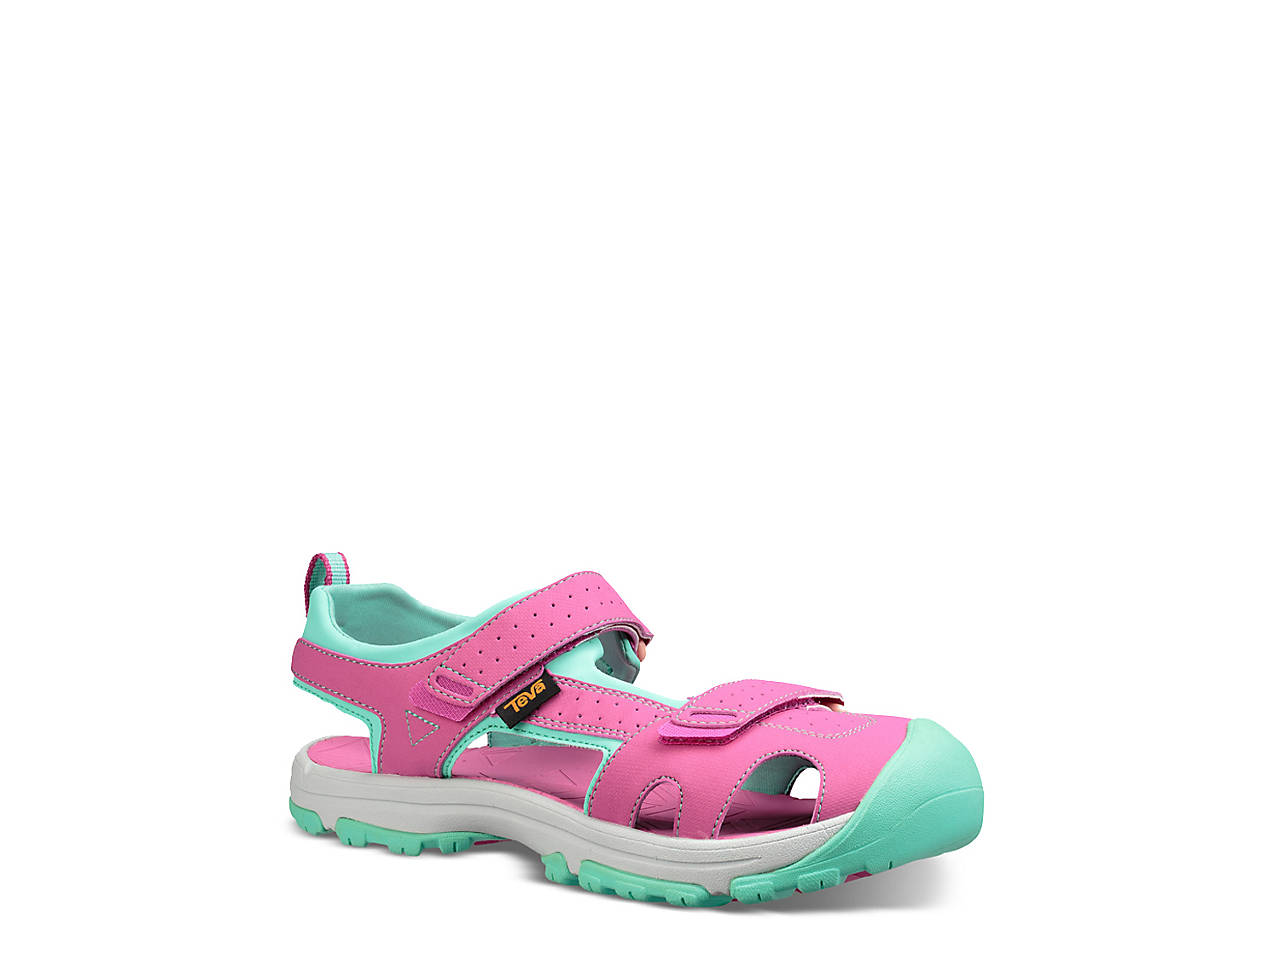 Hurricane Pro Sandal Youth Toddleramp; Toe QdtxshrC